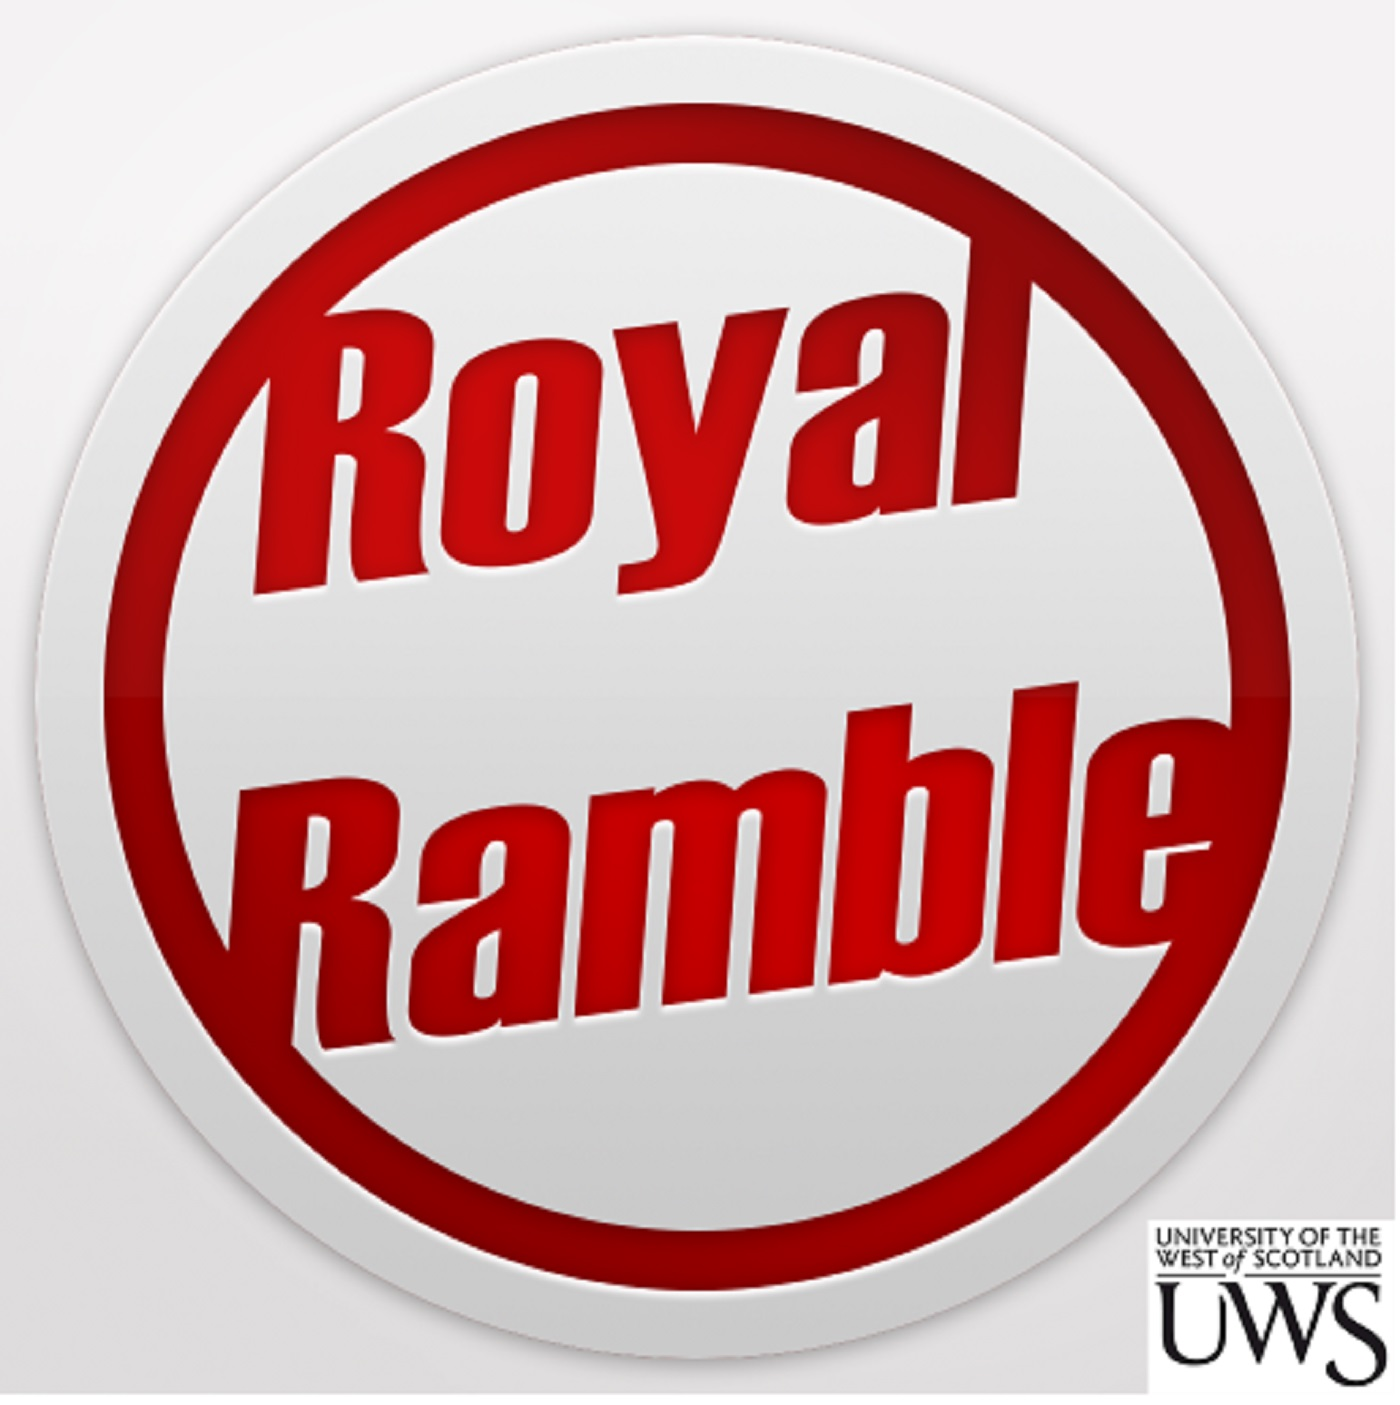 RoyalRambleUWS1